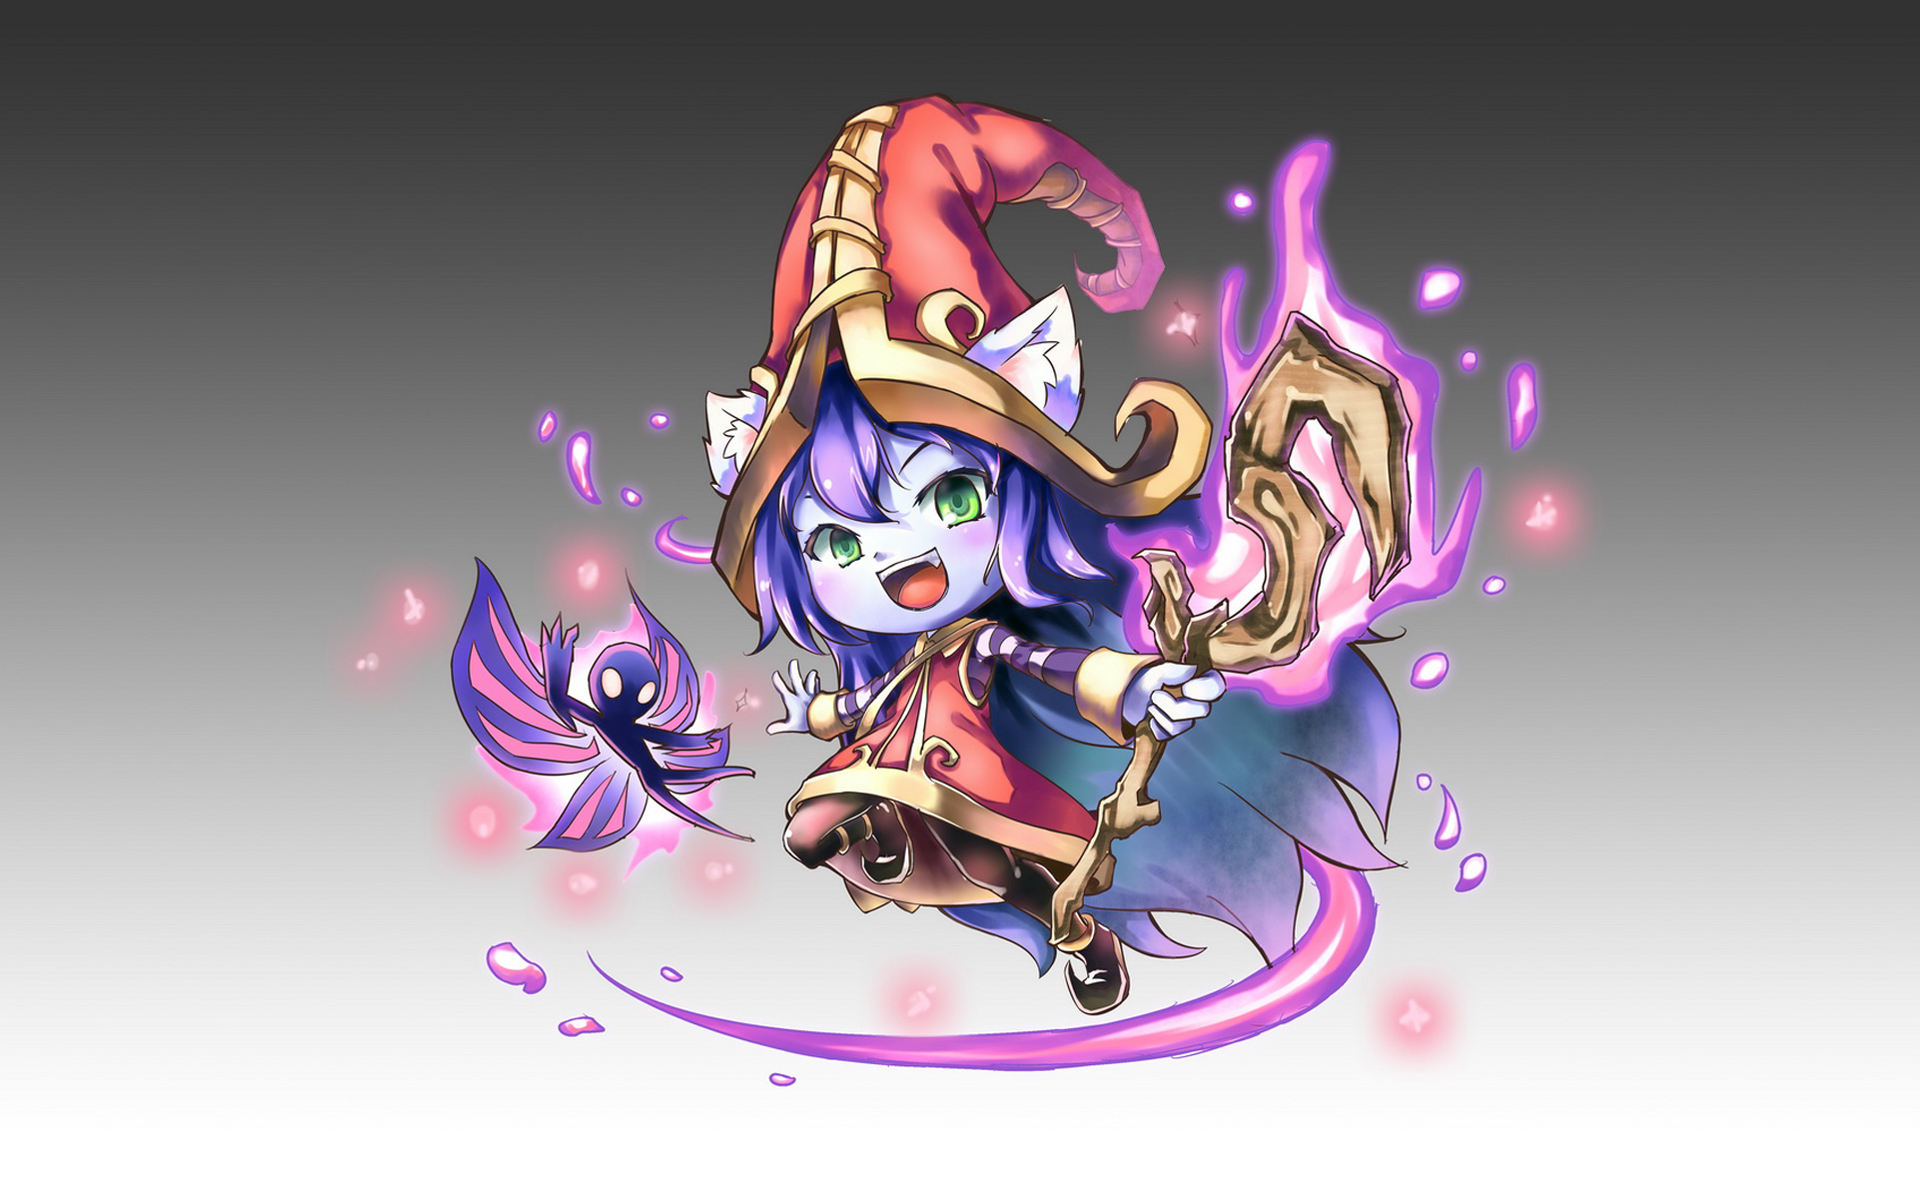 Chibi Lulu wallpaper